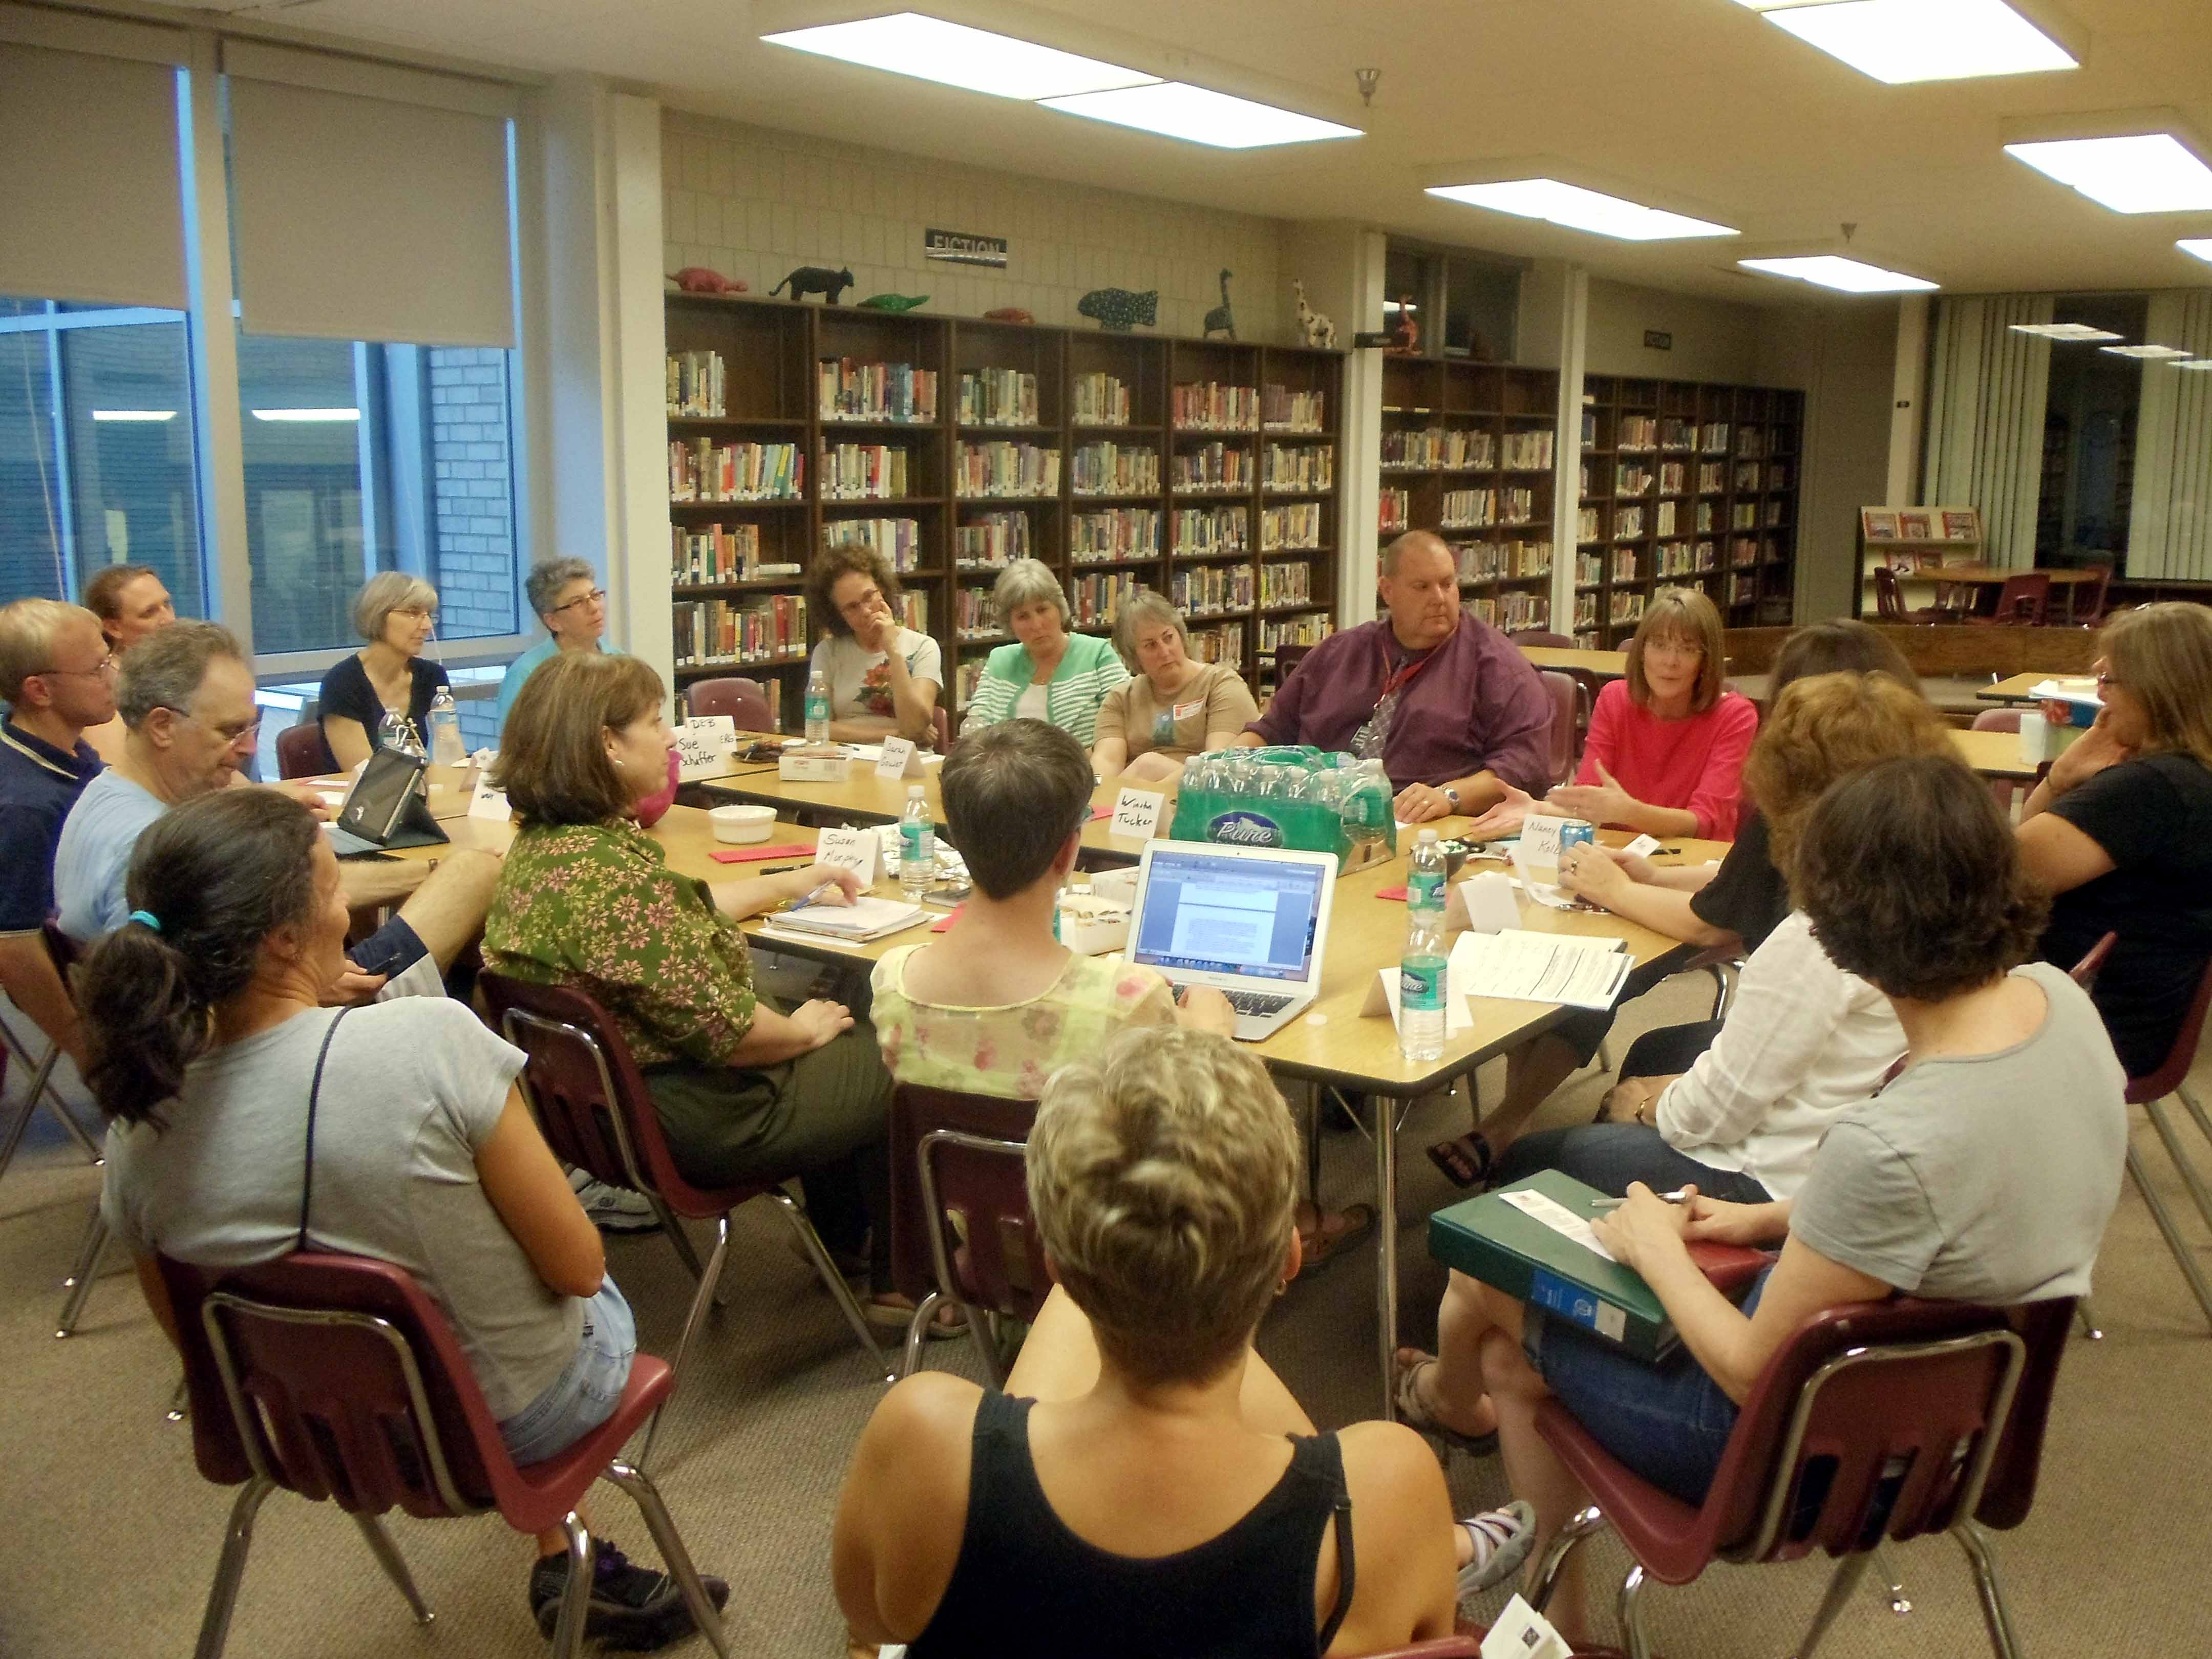 pta meetings If you're looking to help from behind the scenes or out in the open, here are some things you may be interested in: watching children during pta meetings.